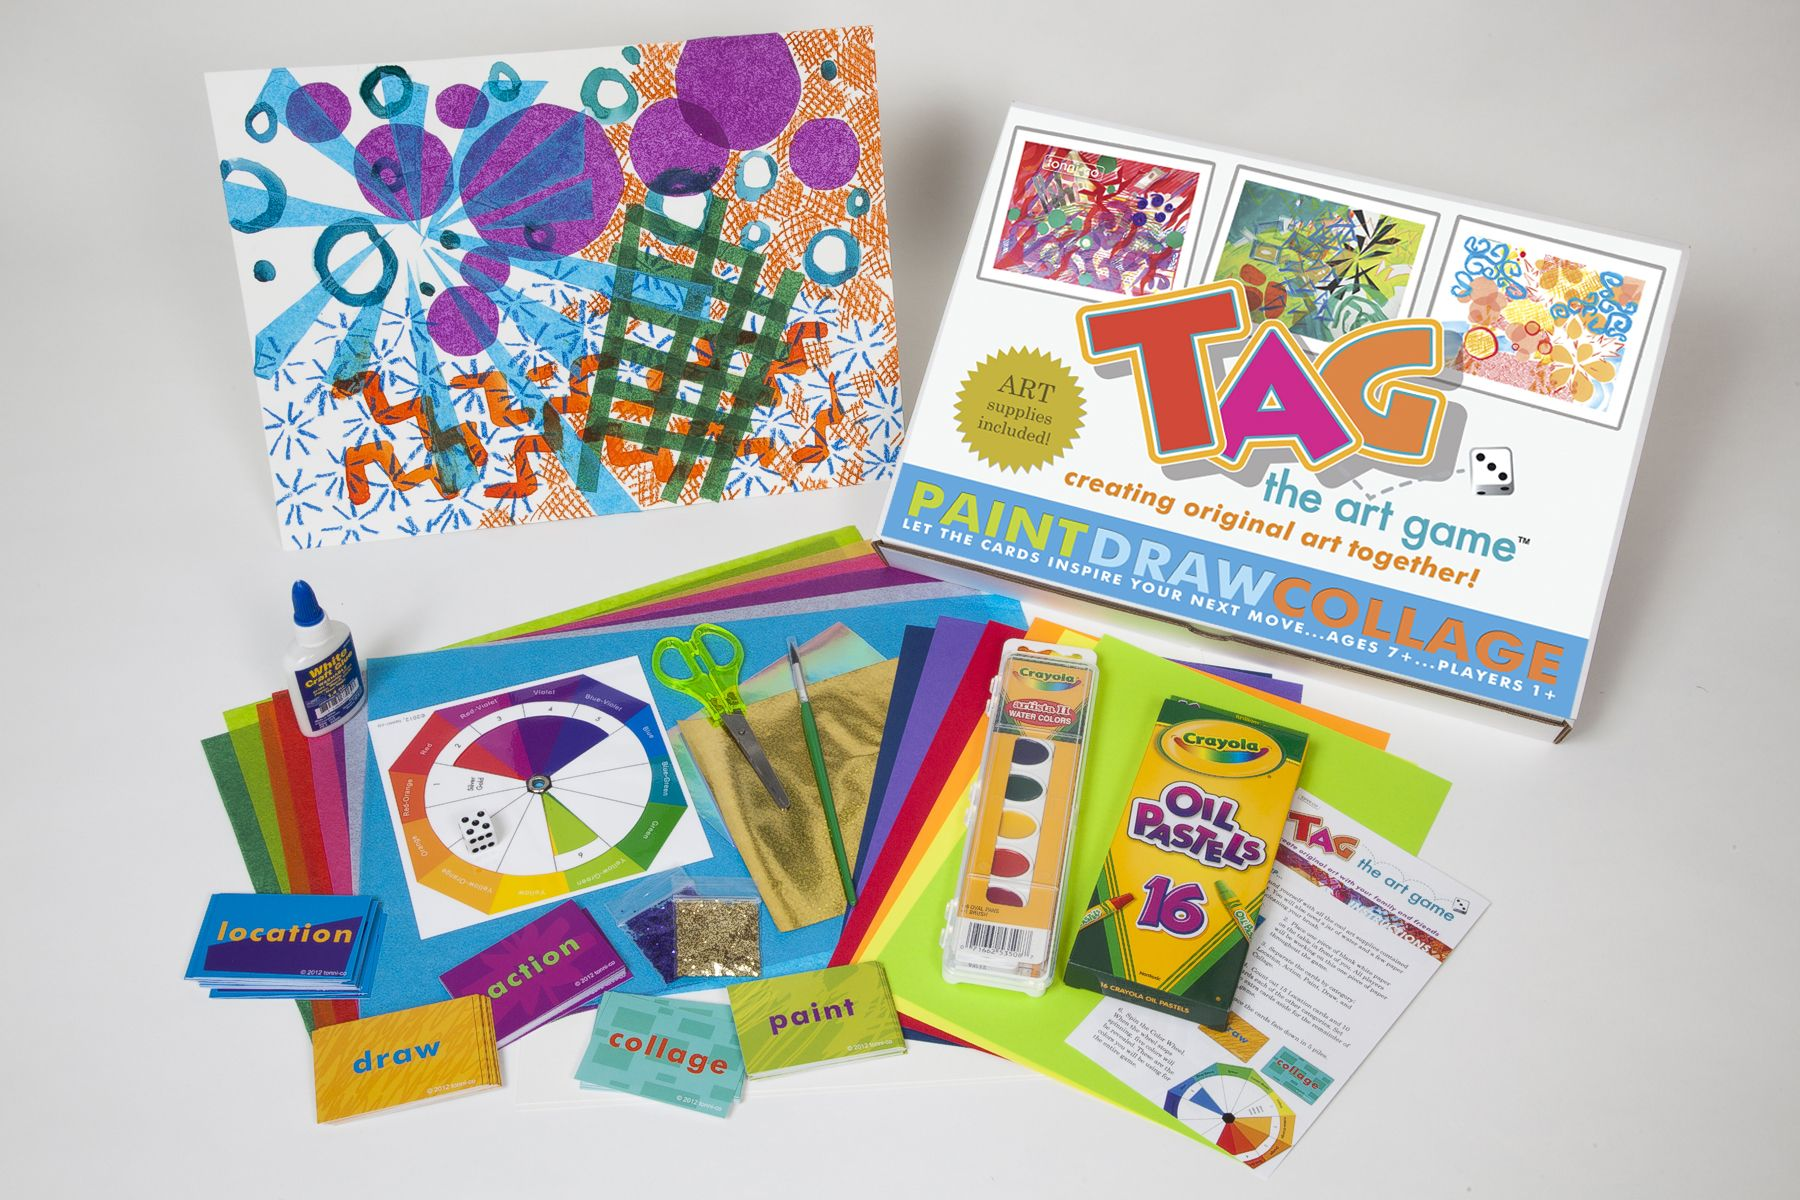 TAG - The Art Game Review and Game Giveaway-Enter to win!! Paint. Draw. Collage. Excellent art game for the home, any classroom or social event!